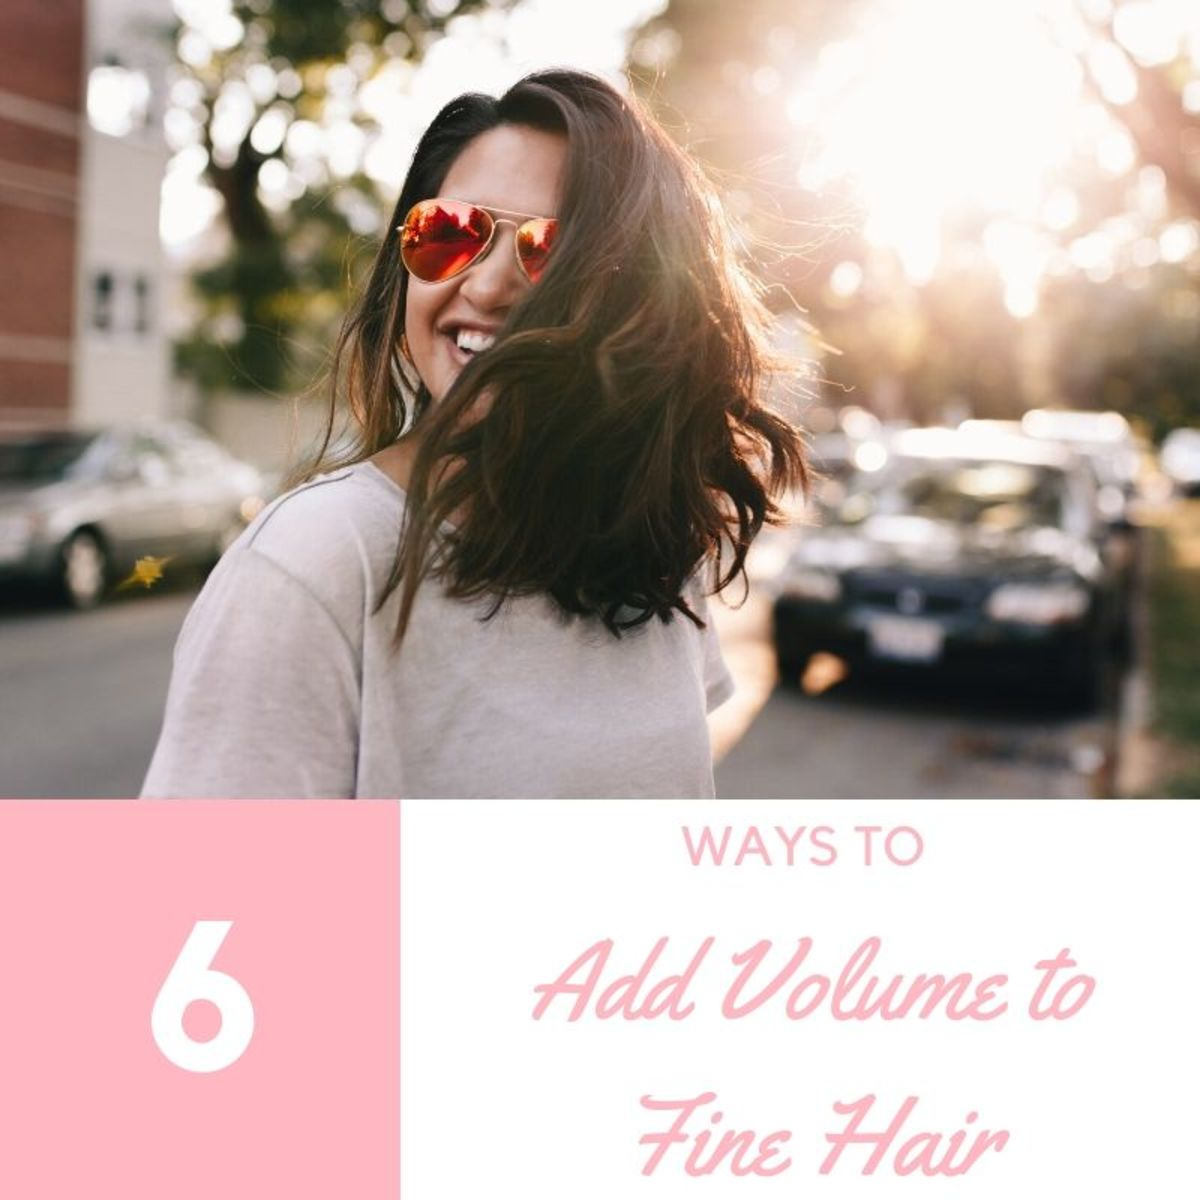 Six Ways to Add Volume to Fine and Flat Hair